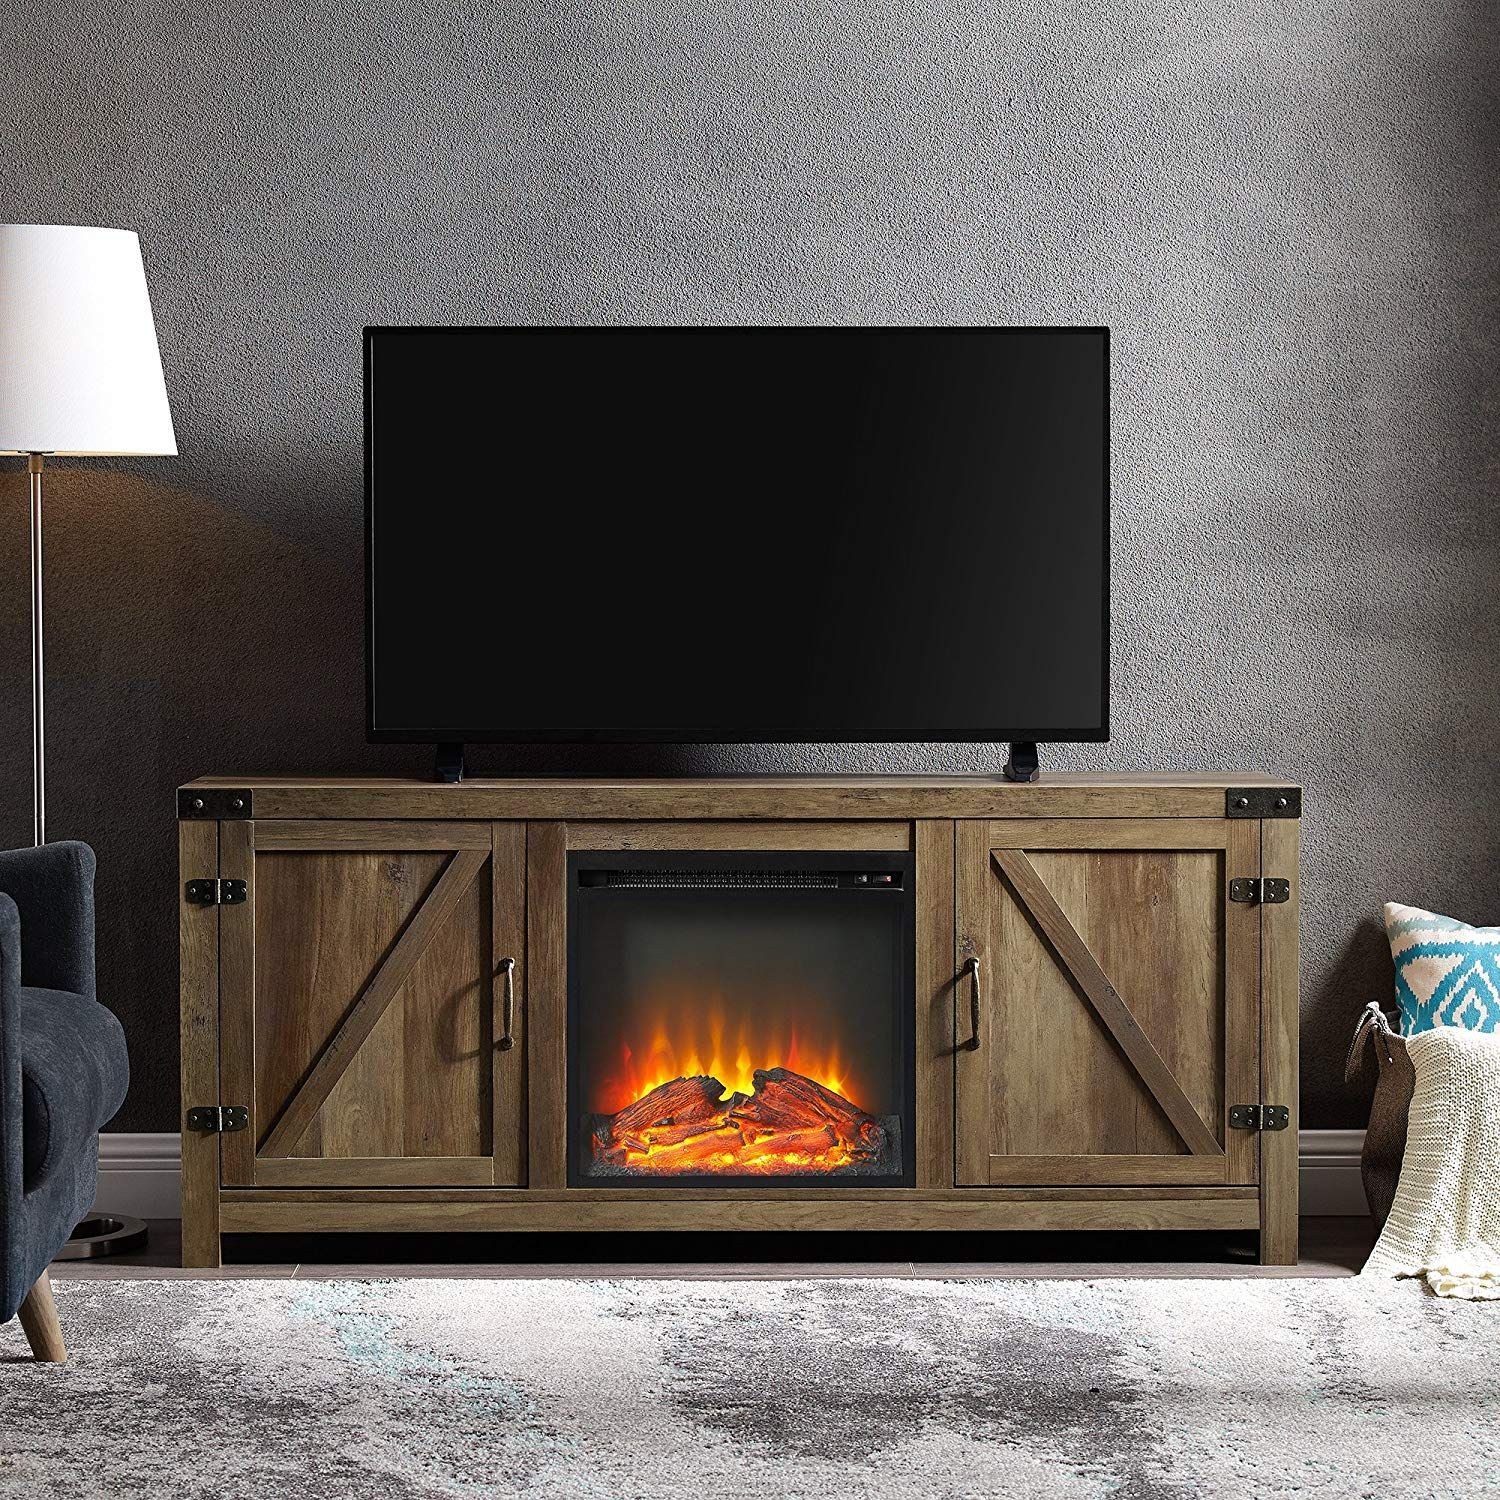 Amazon Com We Furniture Az58fpbdro Tv Stand Rustic Oak Kitchen Dining Fireplace Tv Farmhouse Tv Stand